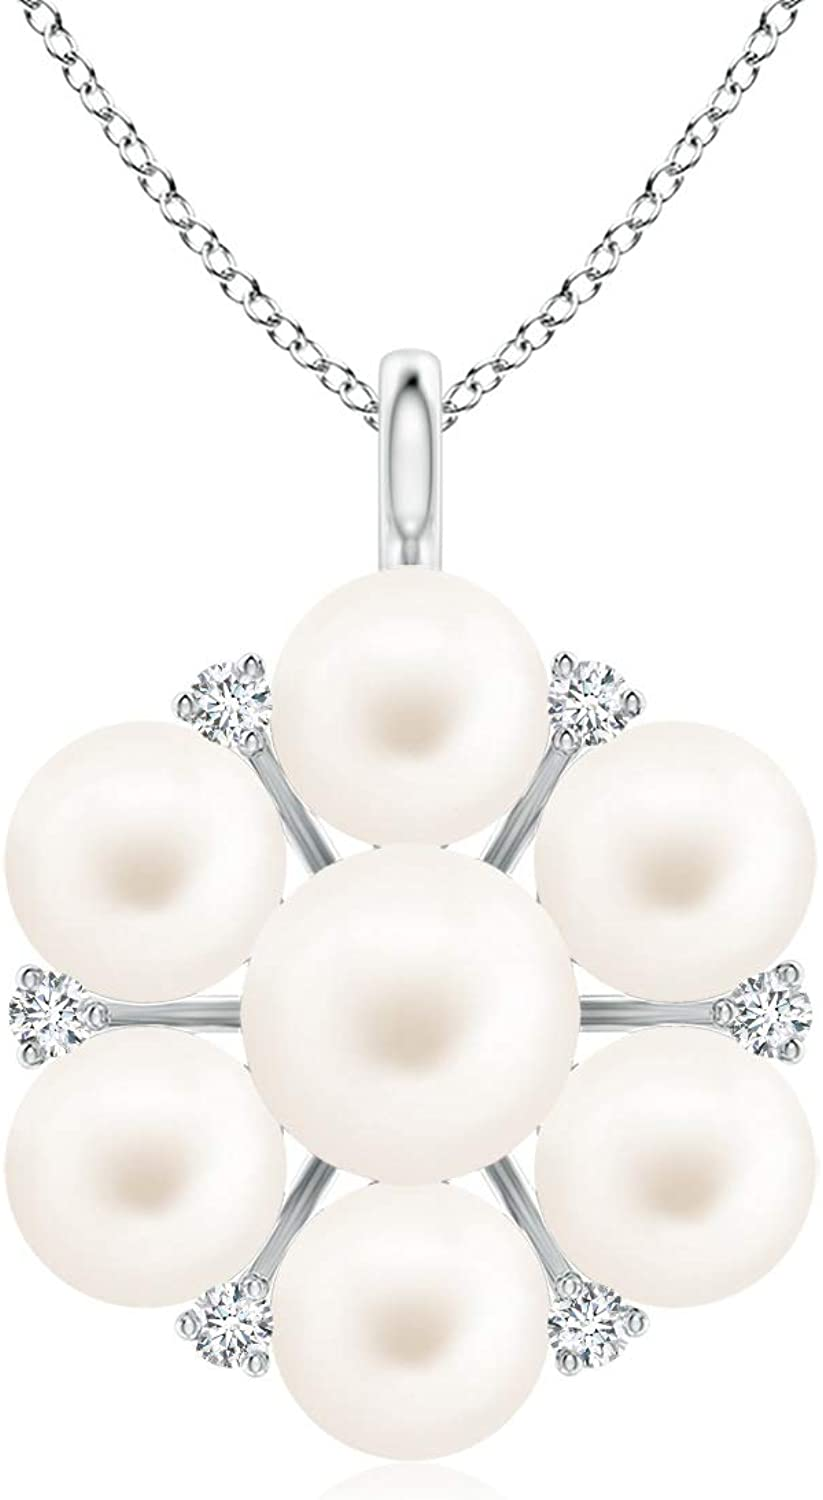 Freshwater Cultured Sales Pearl and Diamond Freshw 5mm price Pendant Flower